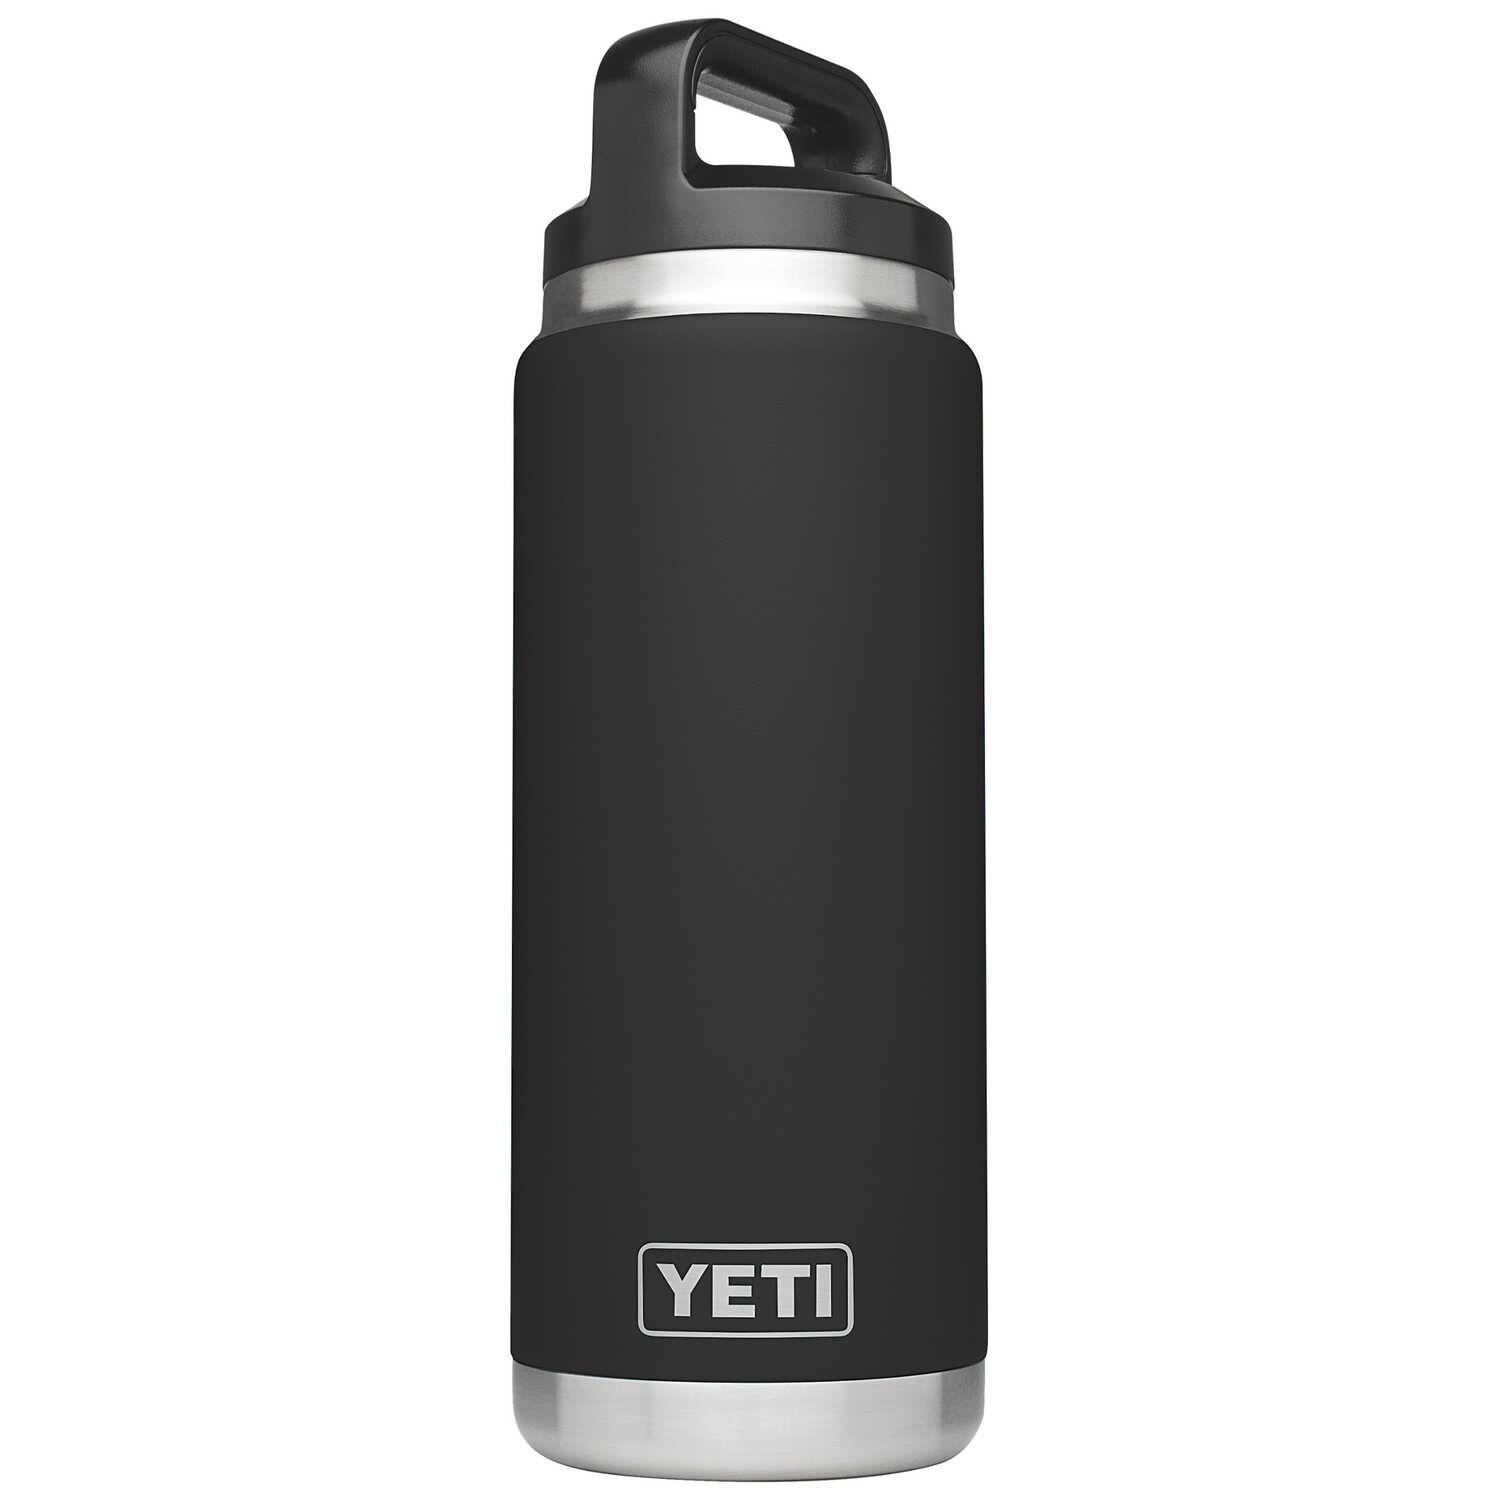 YETI  Rambler  Black  26 oz. Insulated Bottle  BPA Free Stainless Steel